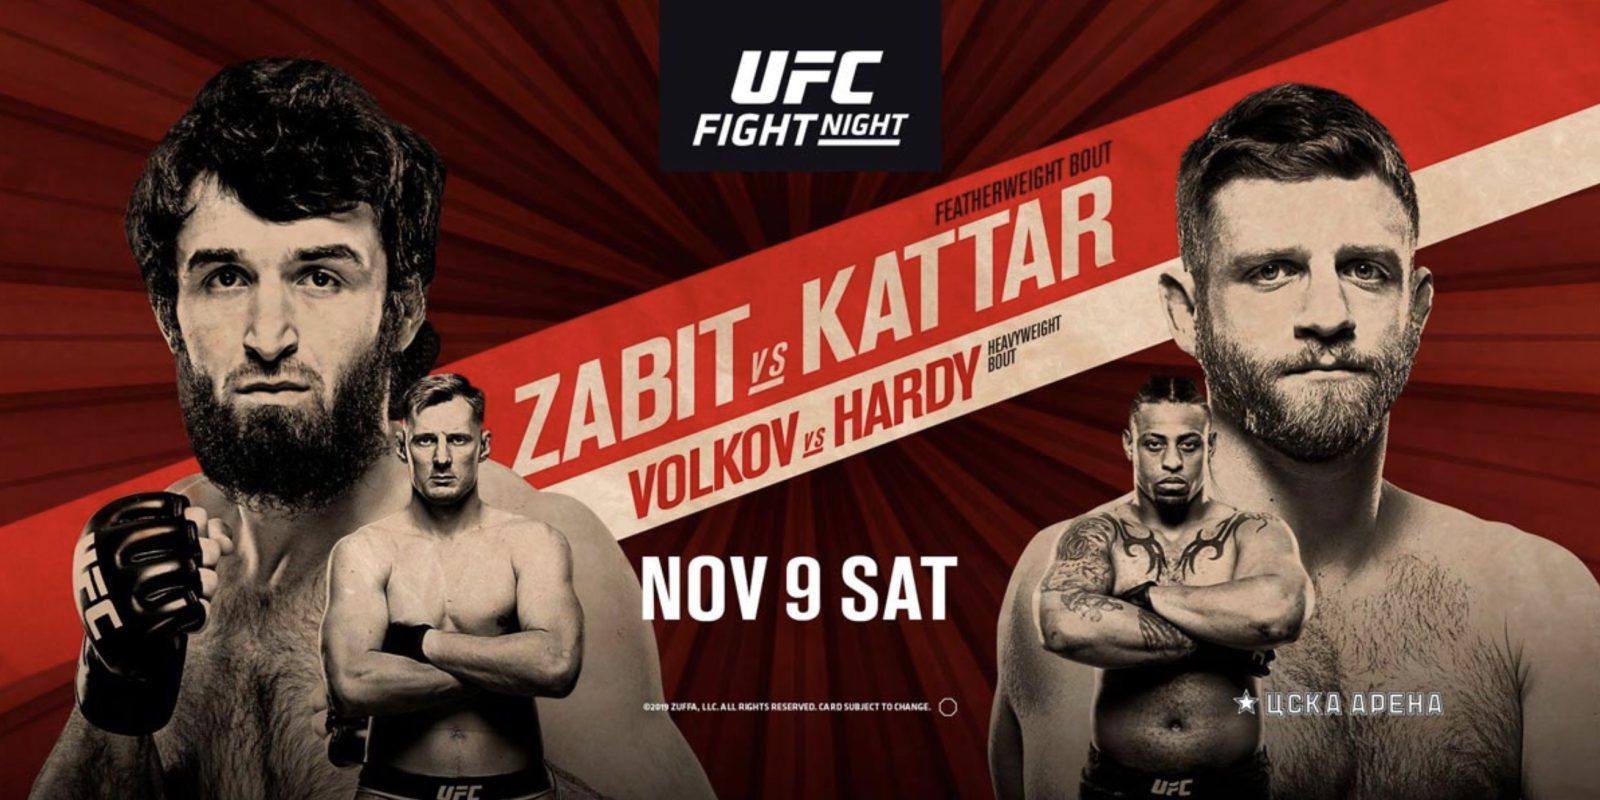 Watch UFC Fight Night 163 Zabit Vs Kattar 11/9/19